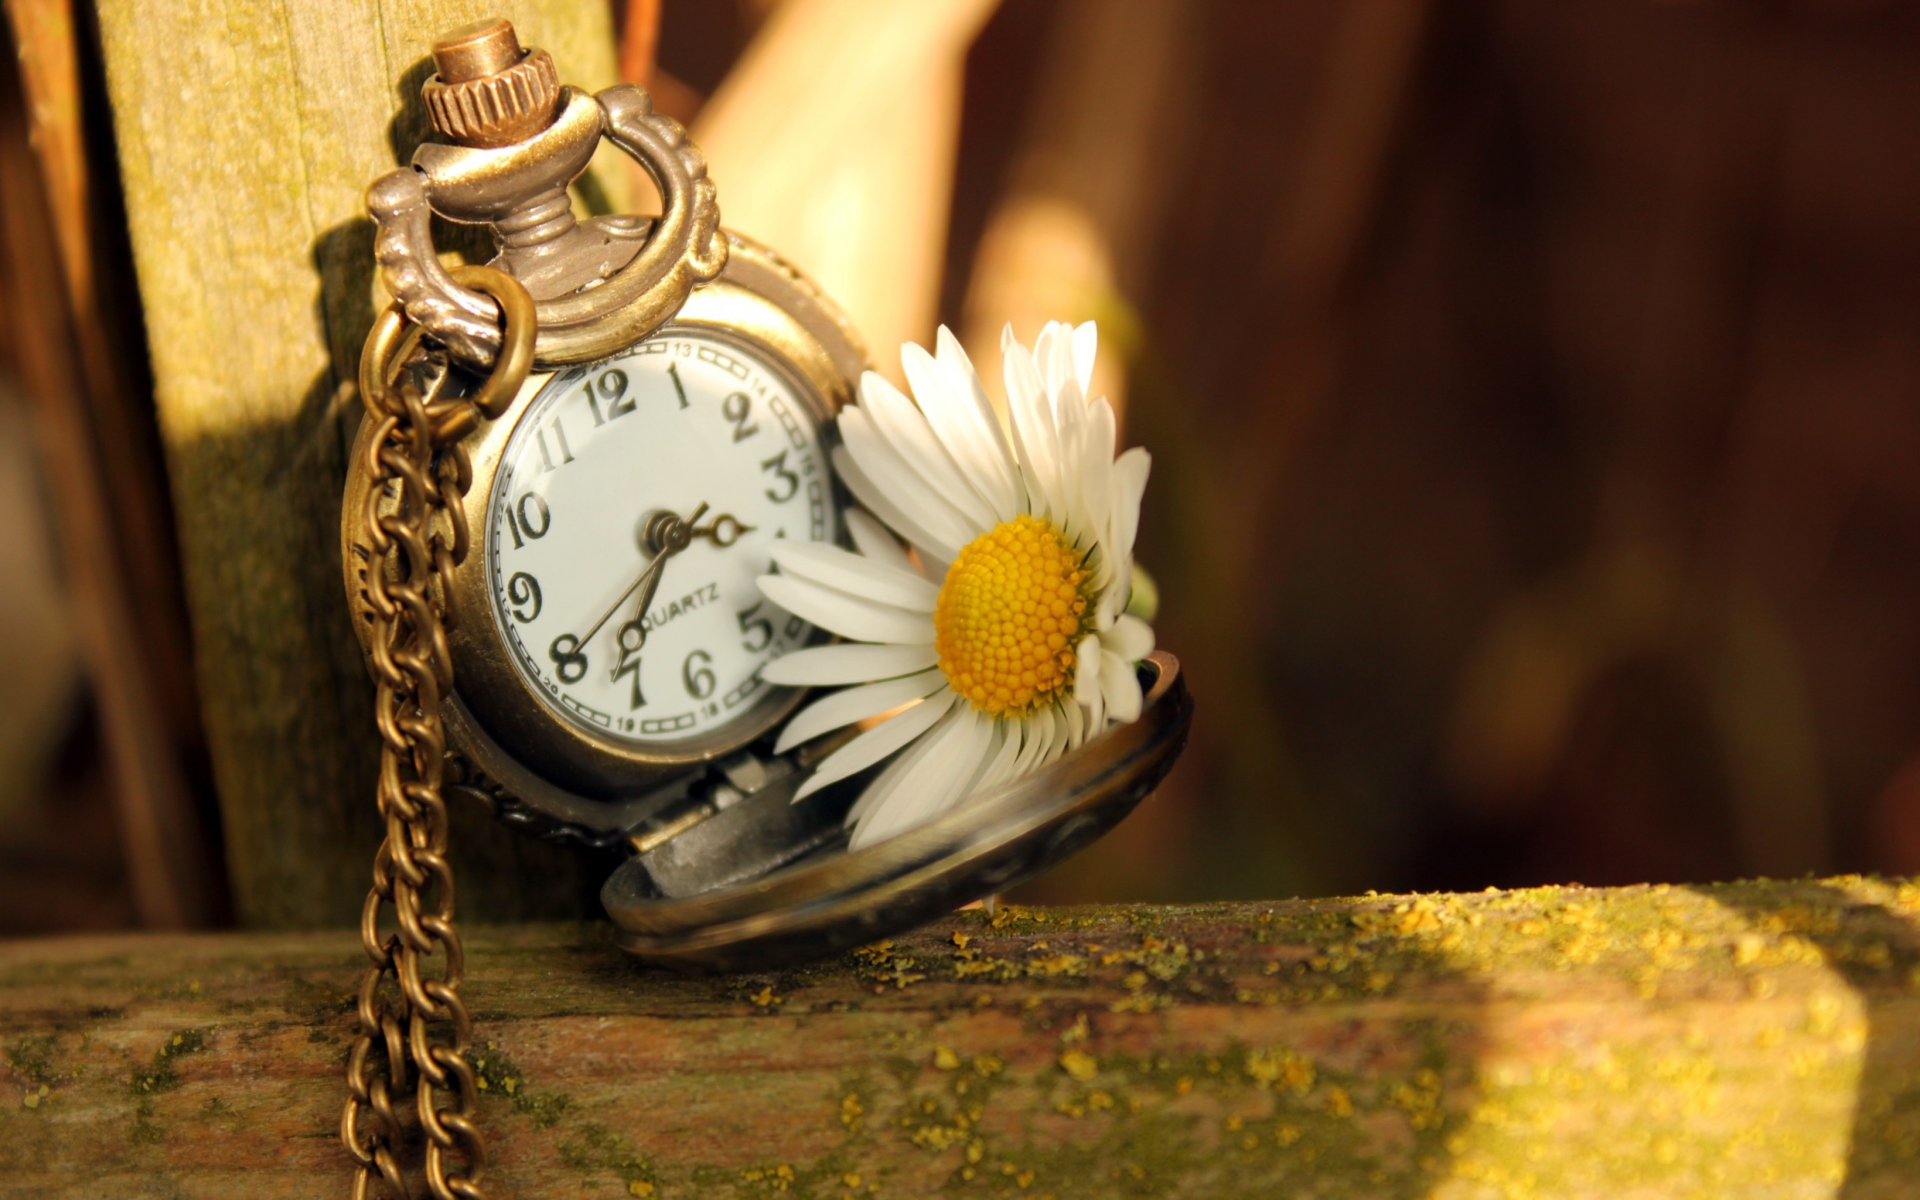 Vintage-Watch-And-Daisy-1920x1200